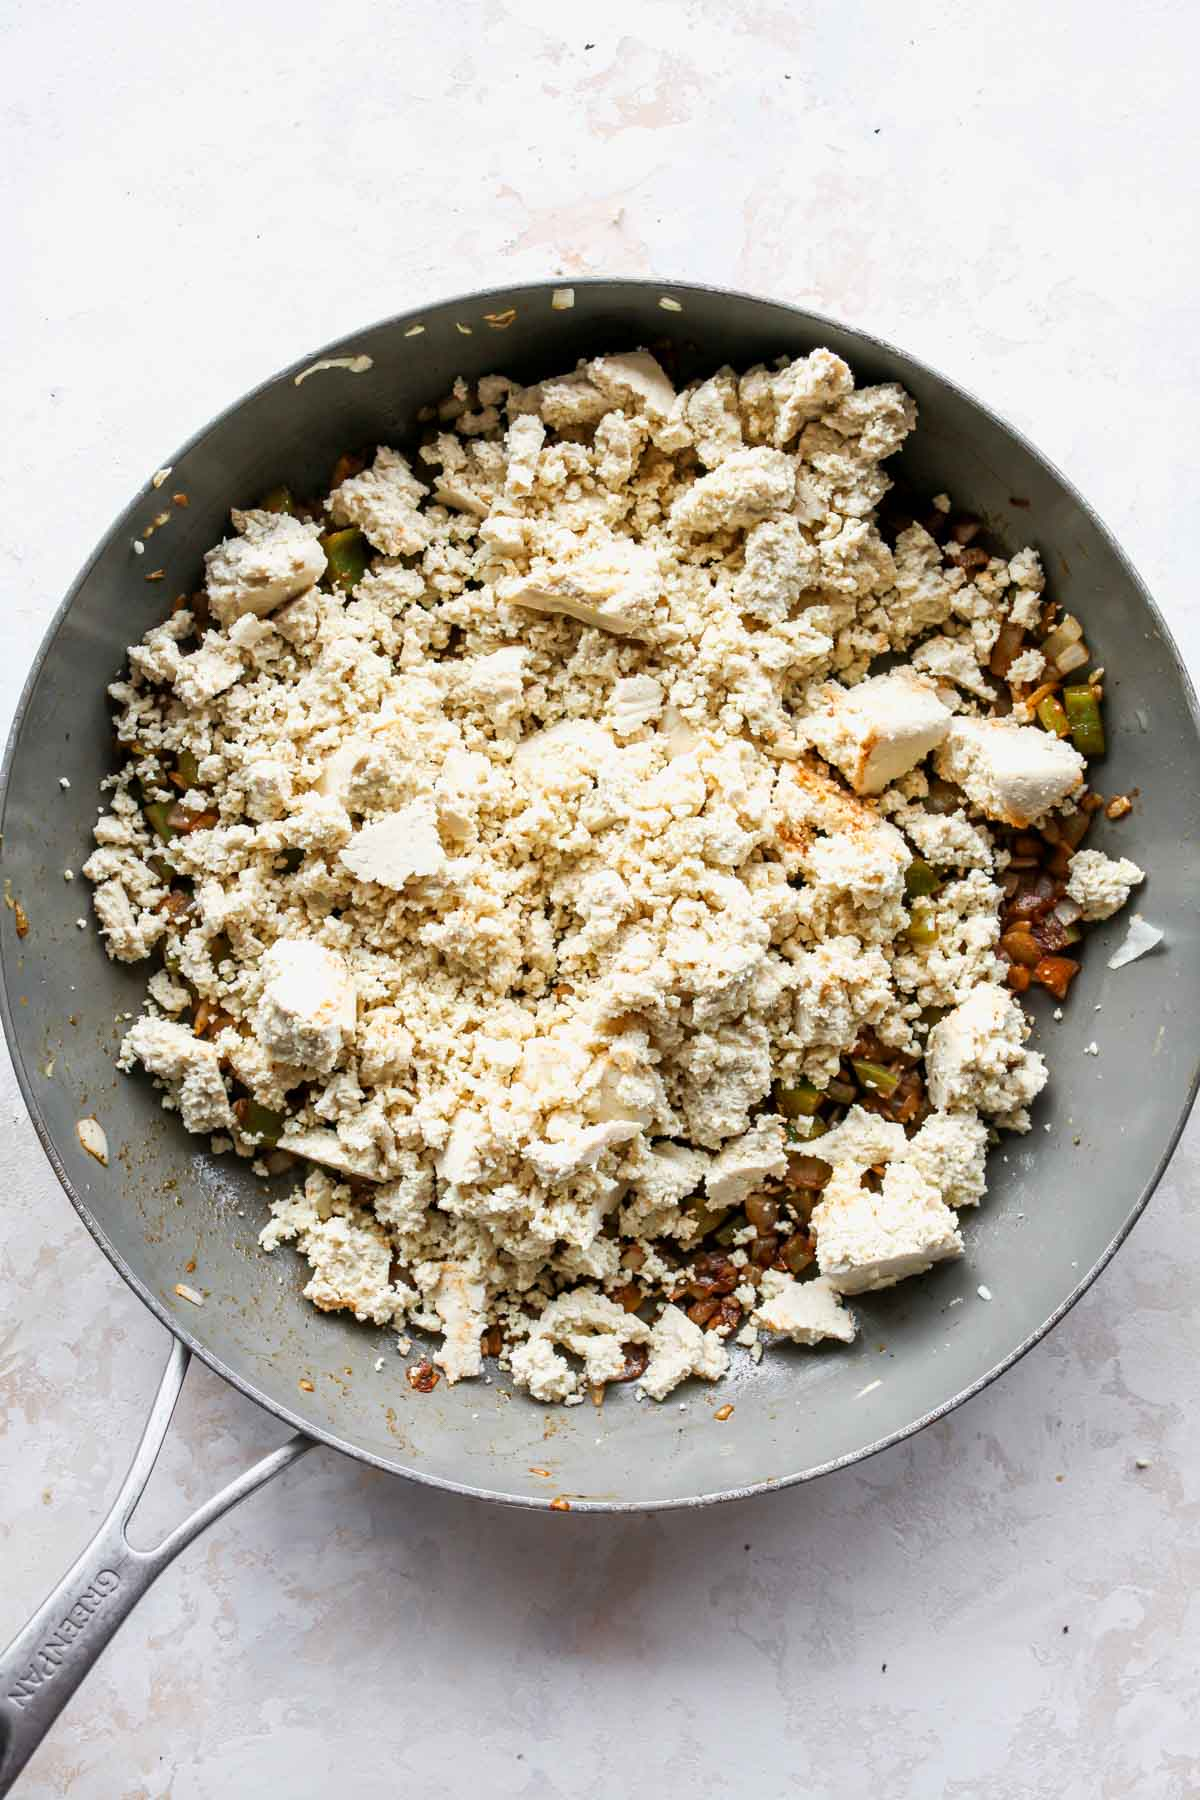 Crumbled tofu being sauteed in a large skillet